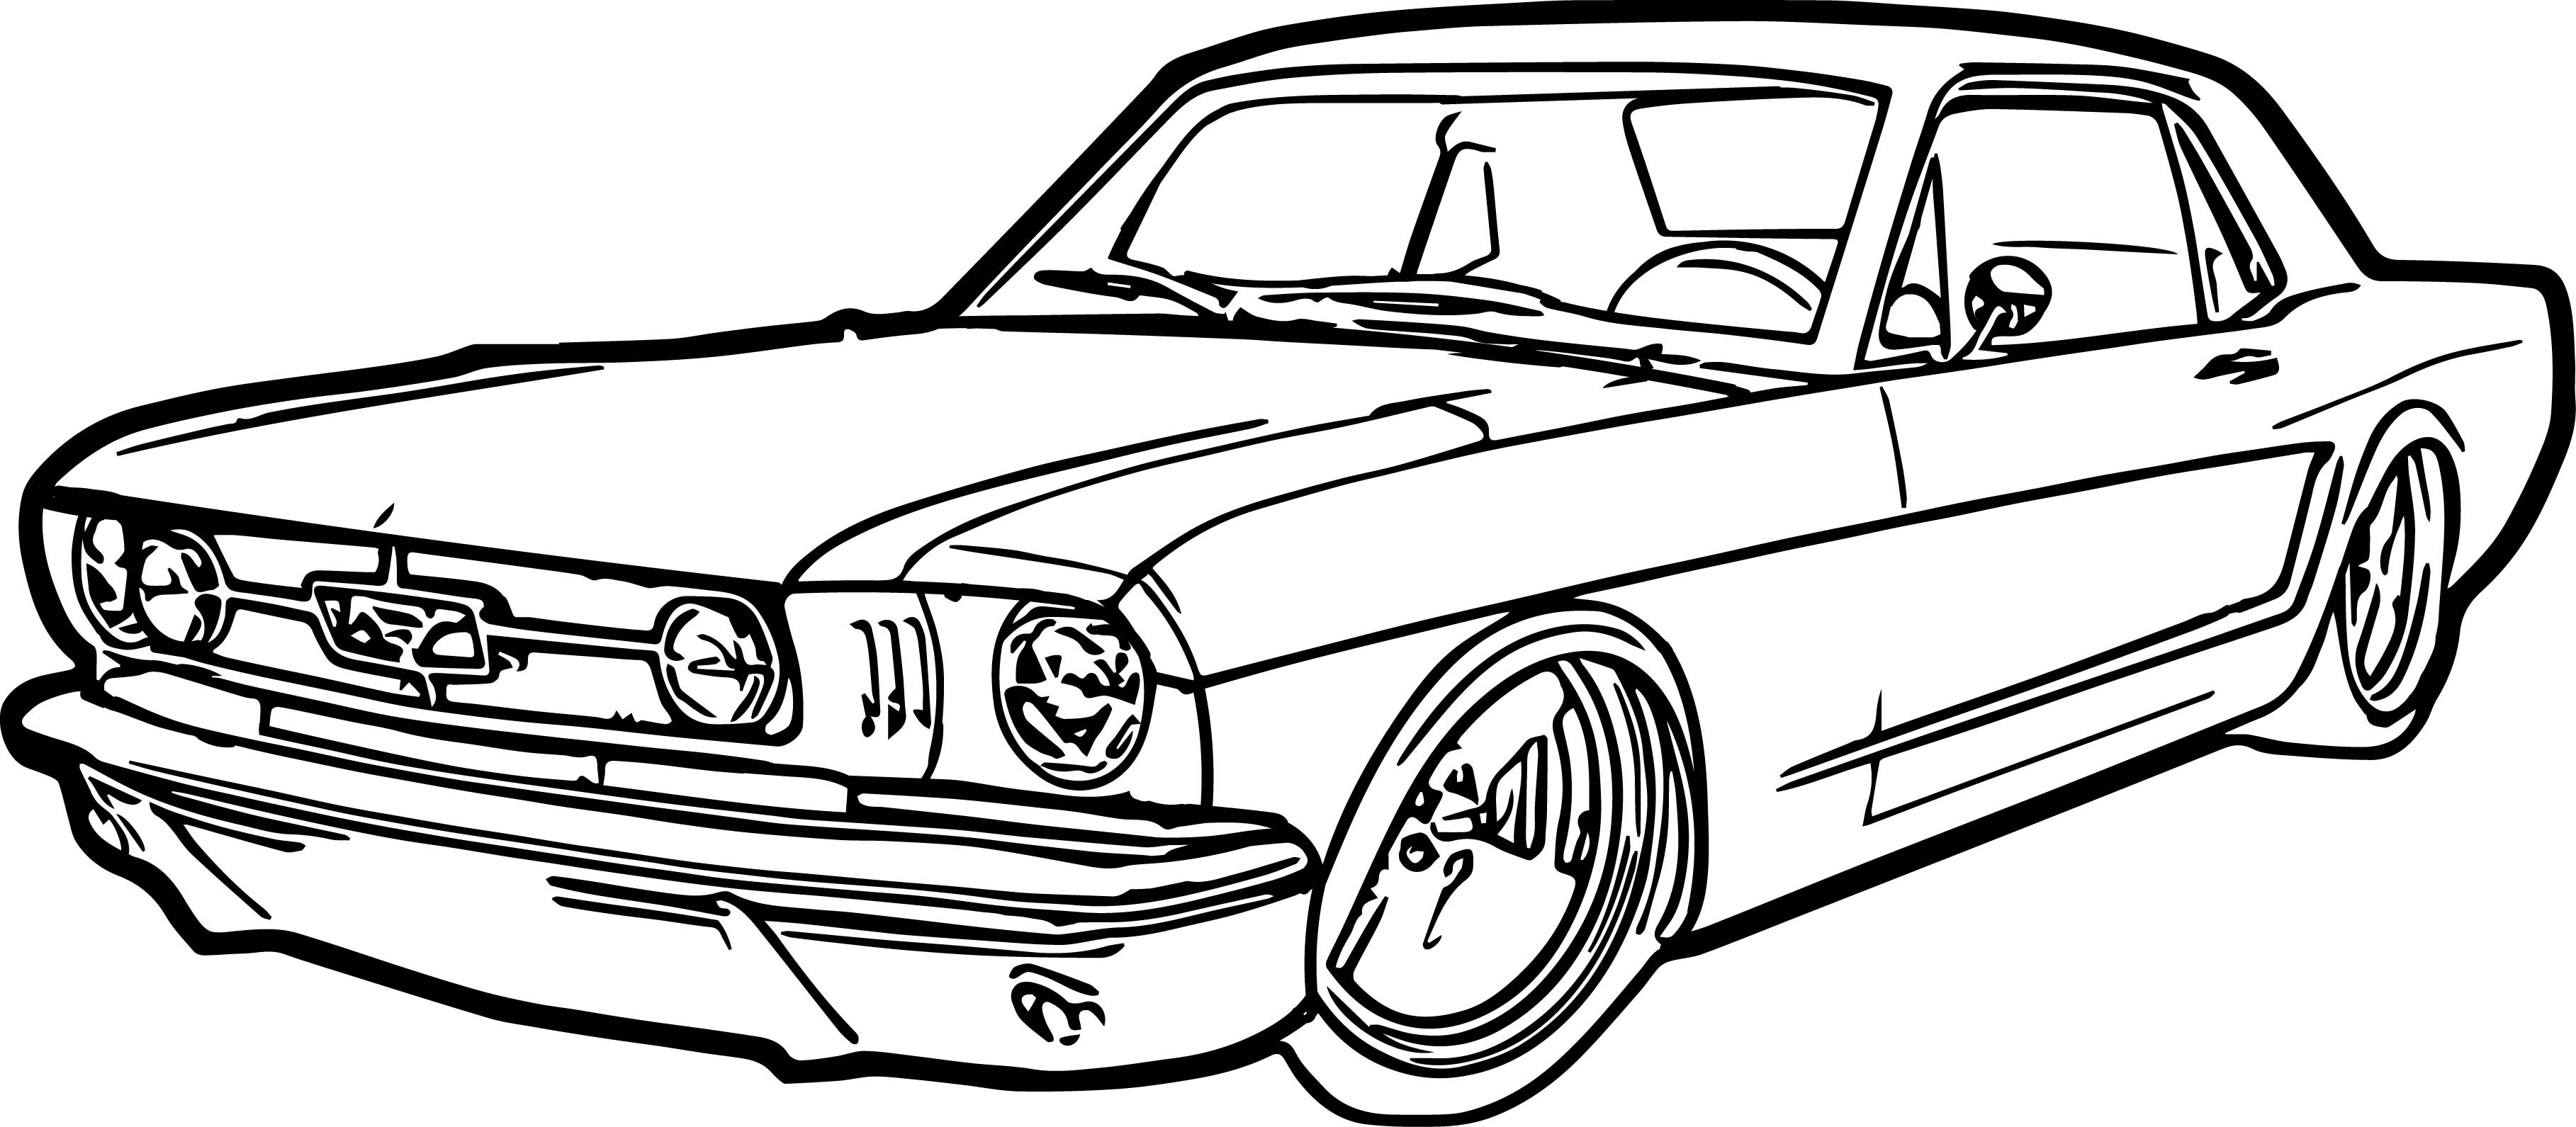 3635x1591 Muscle Car Coloring Pages Beautiful Drawn Lamborghini Muscle Car